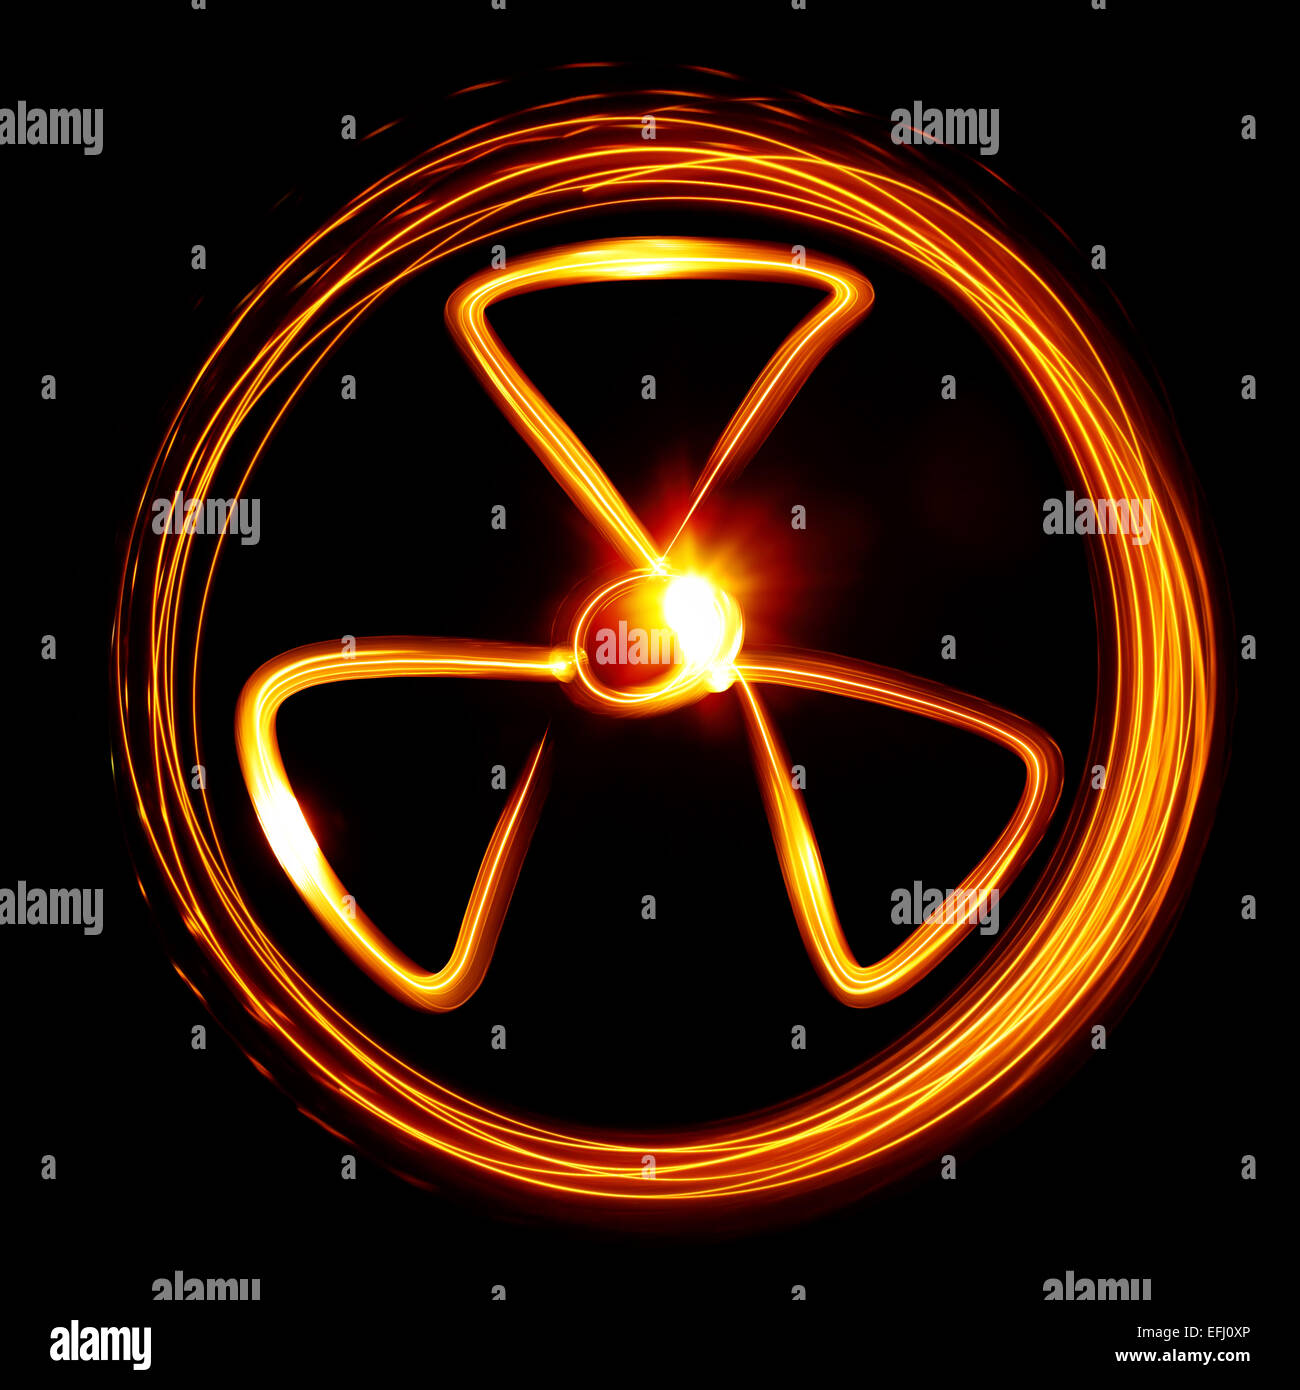 Radiation sign created by light - Stock Image